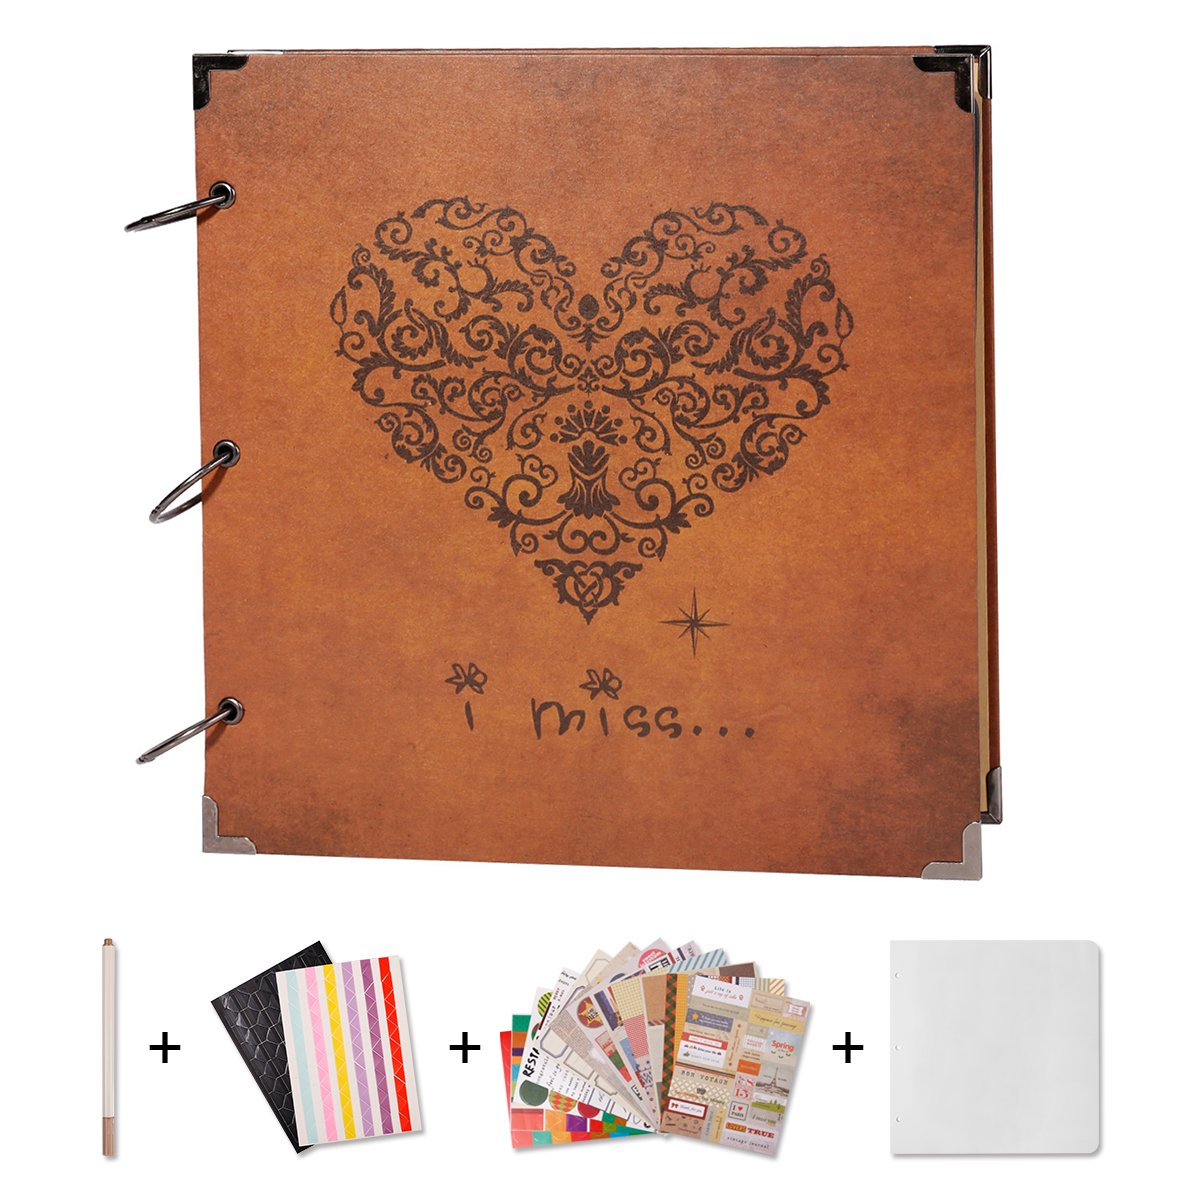 aa2792a26b2f Best Rated in Scrapbooking Albums   Refills   Helpful Customer ...